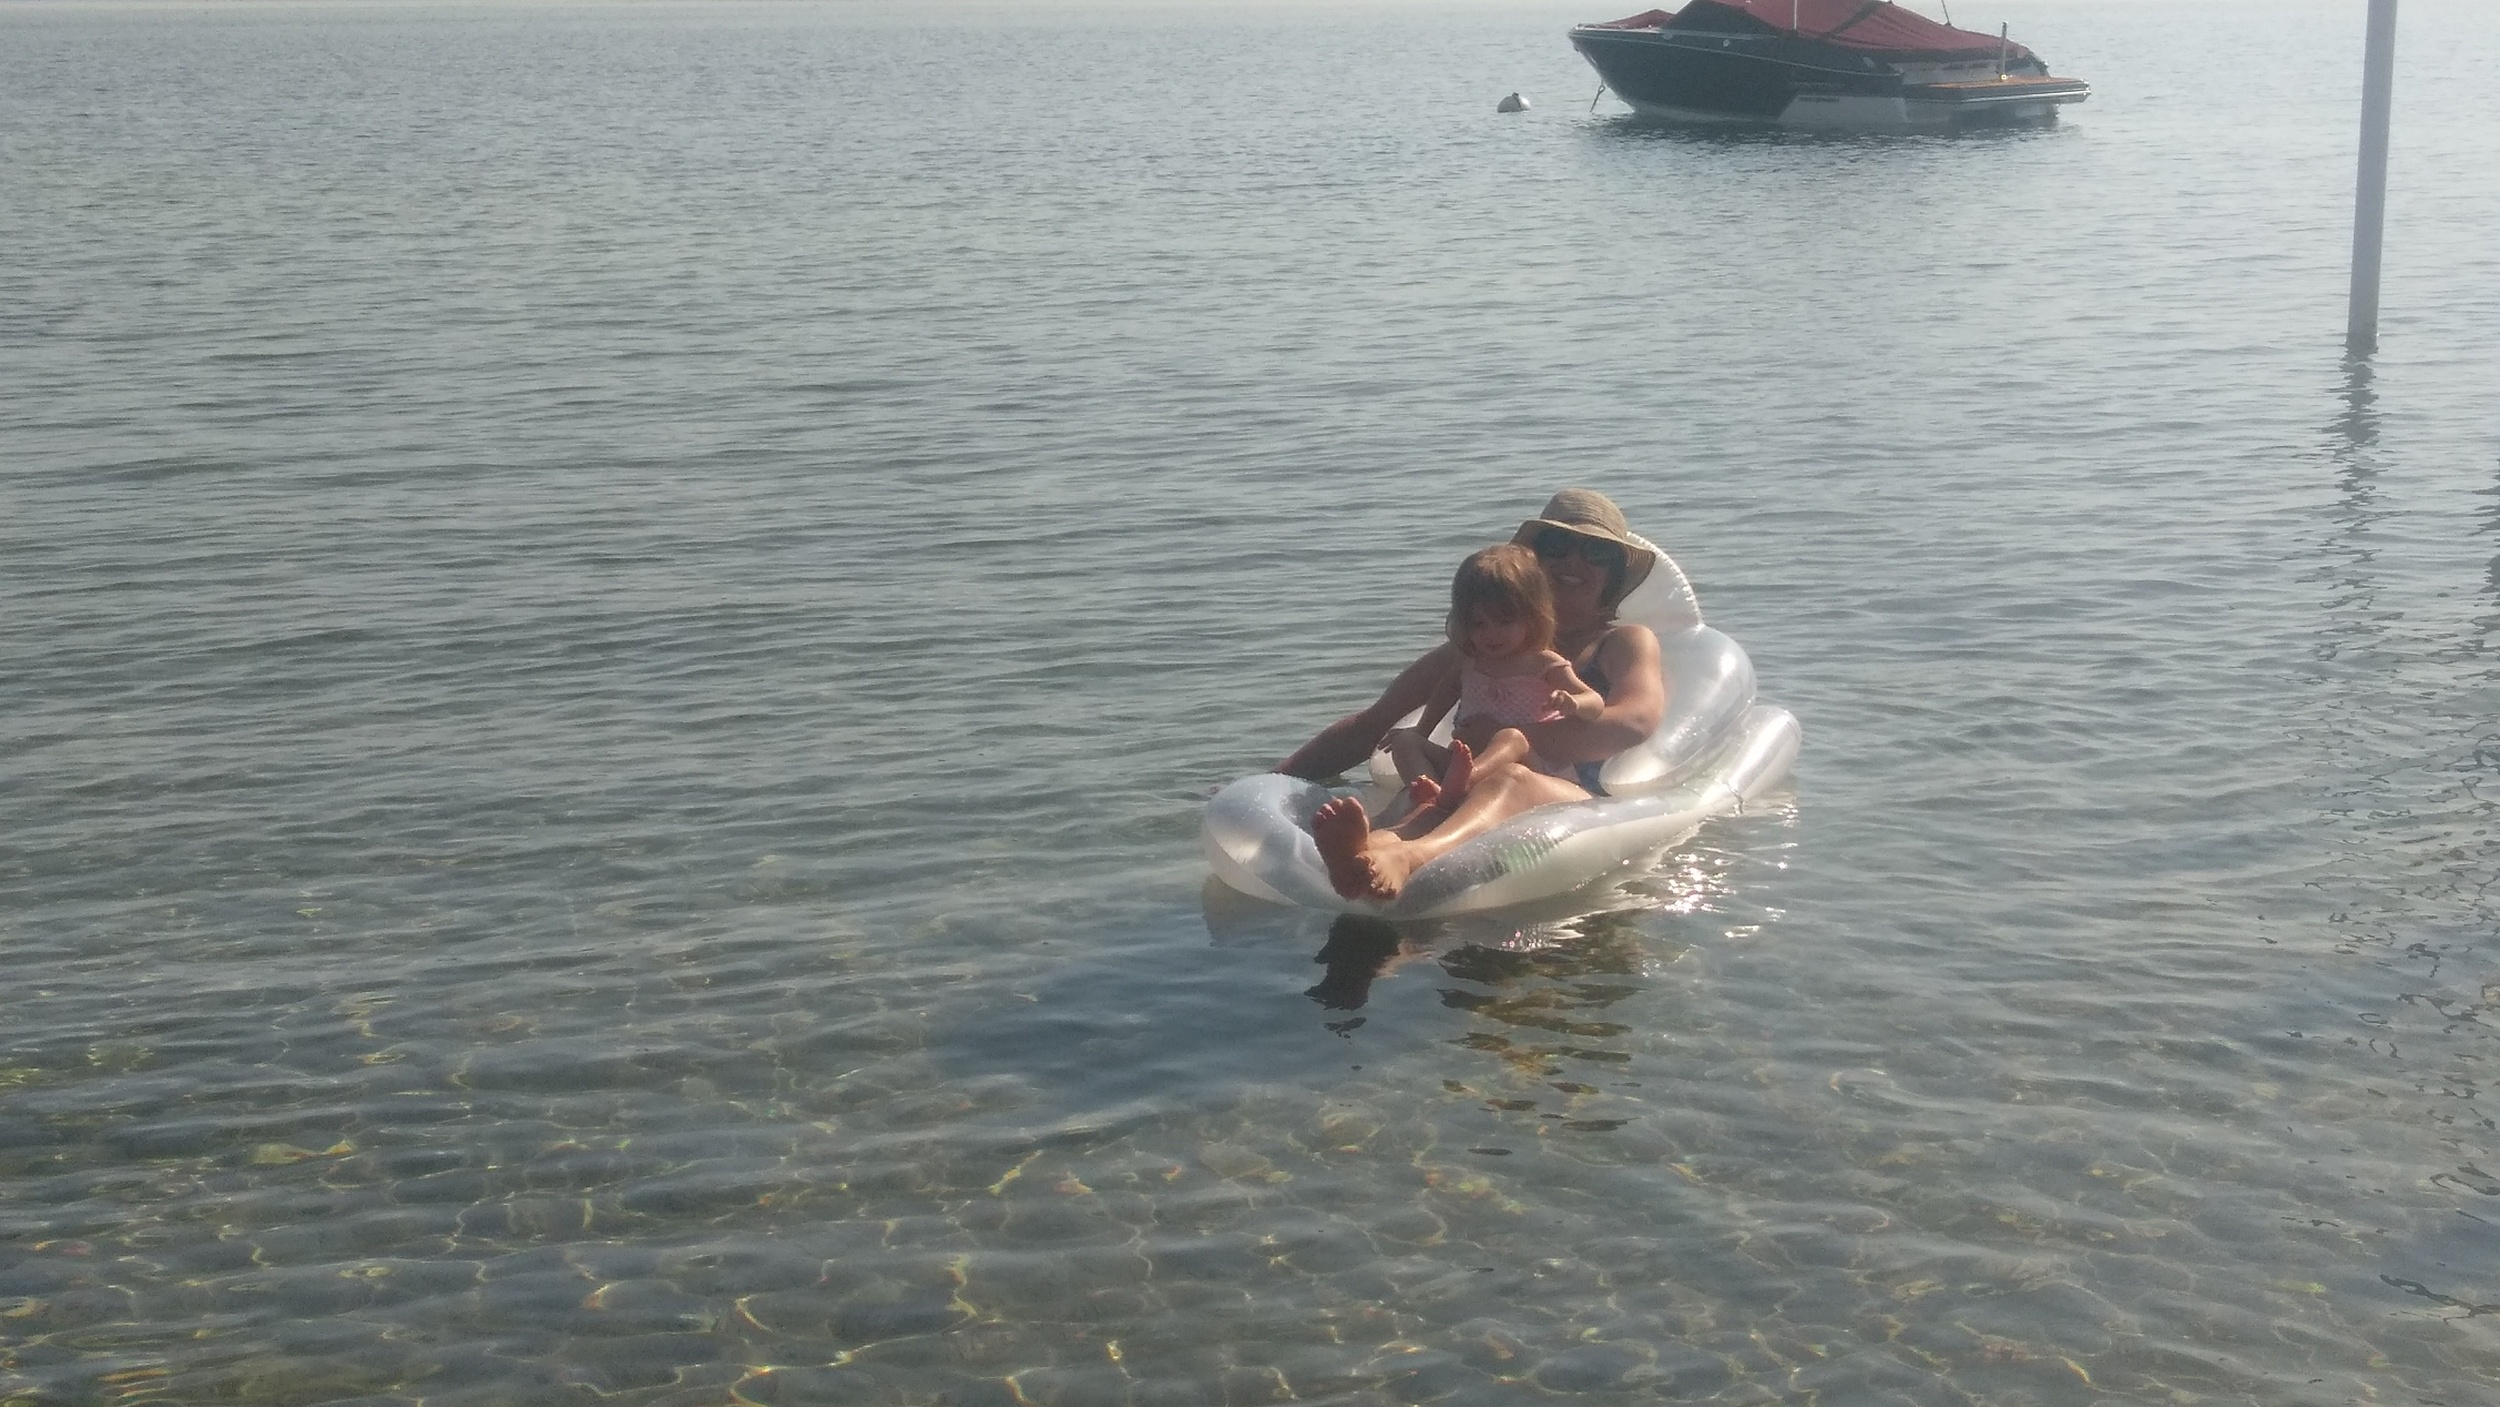 Just floating in the lake